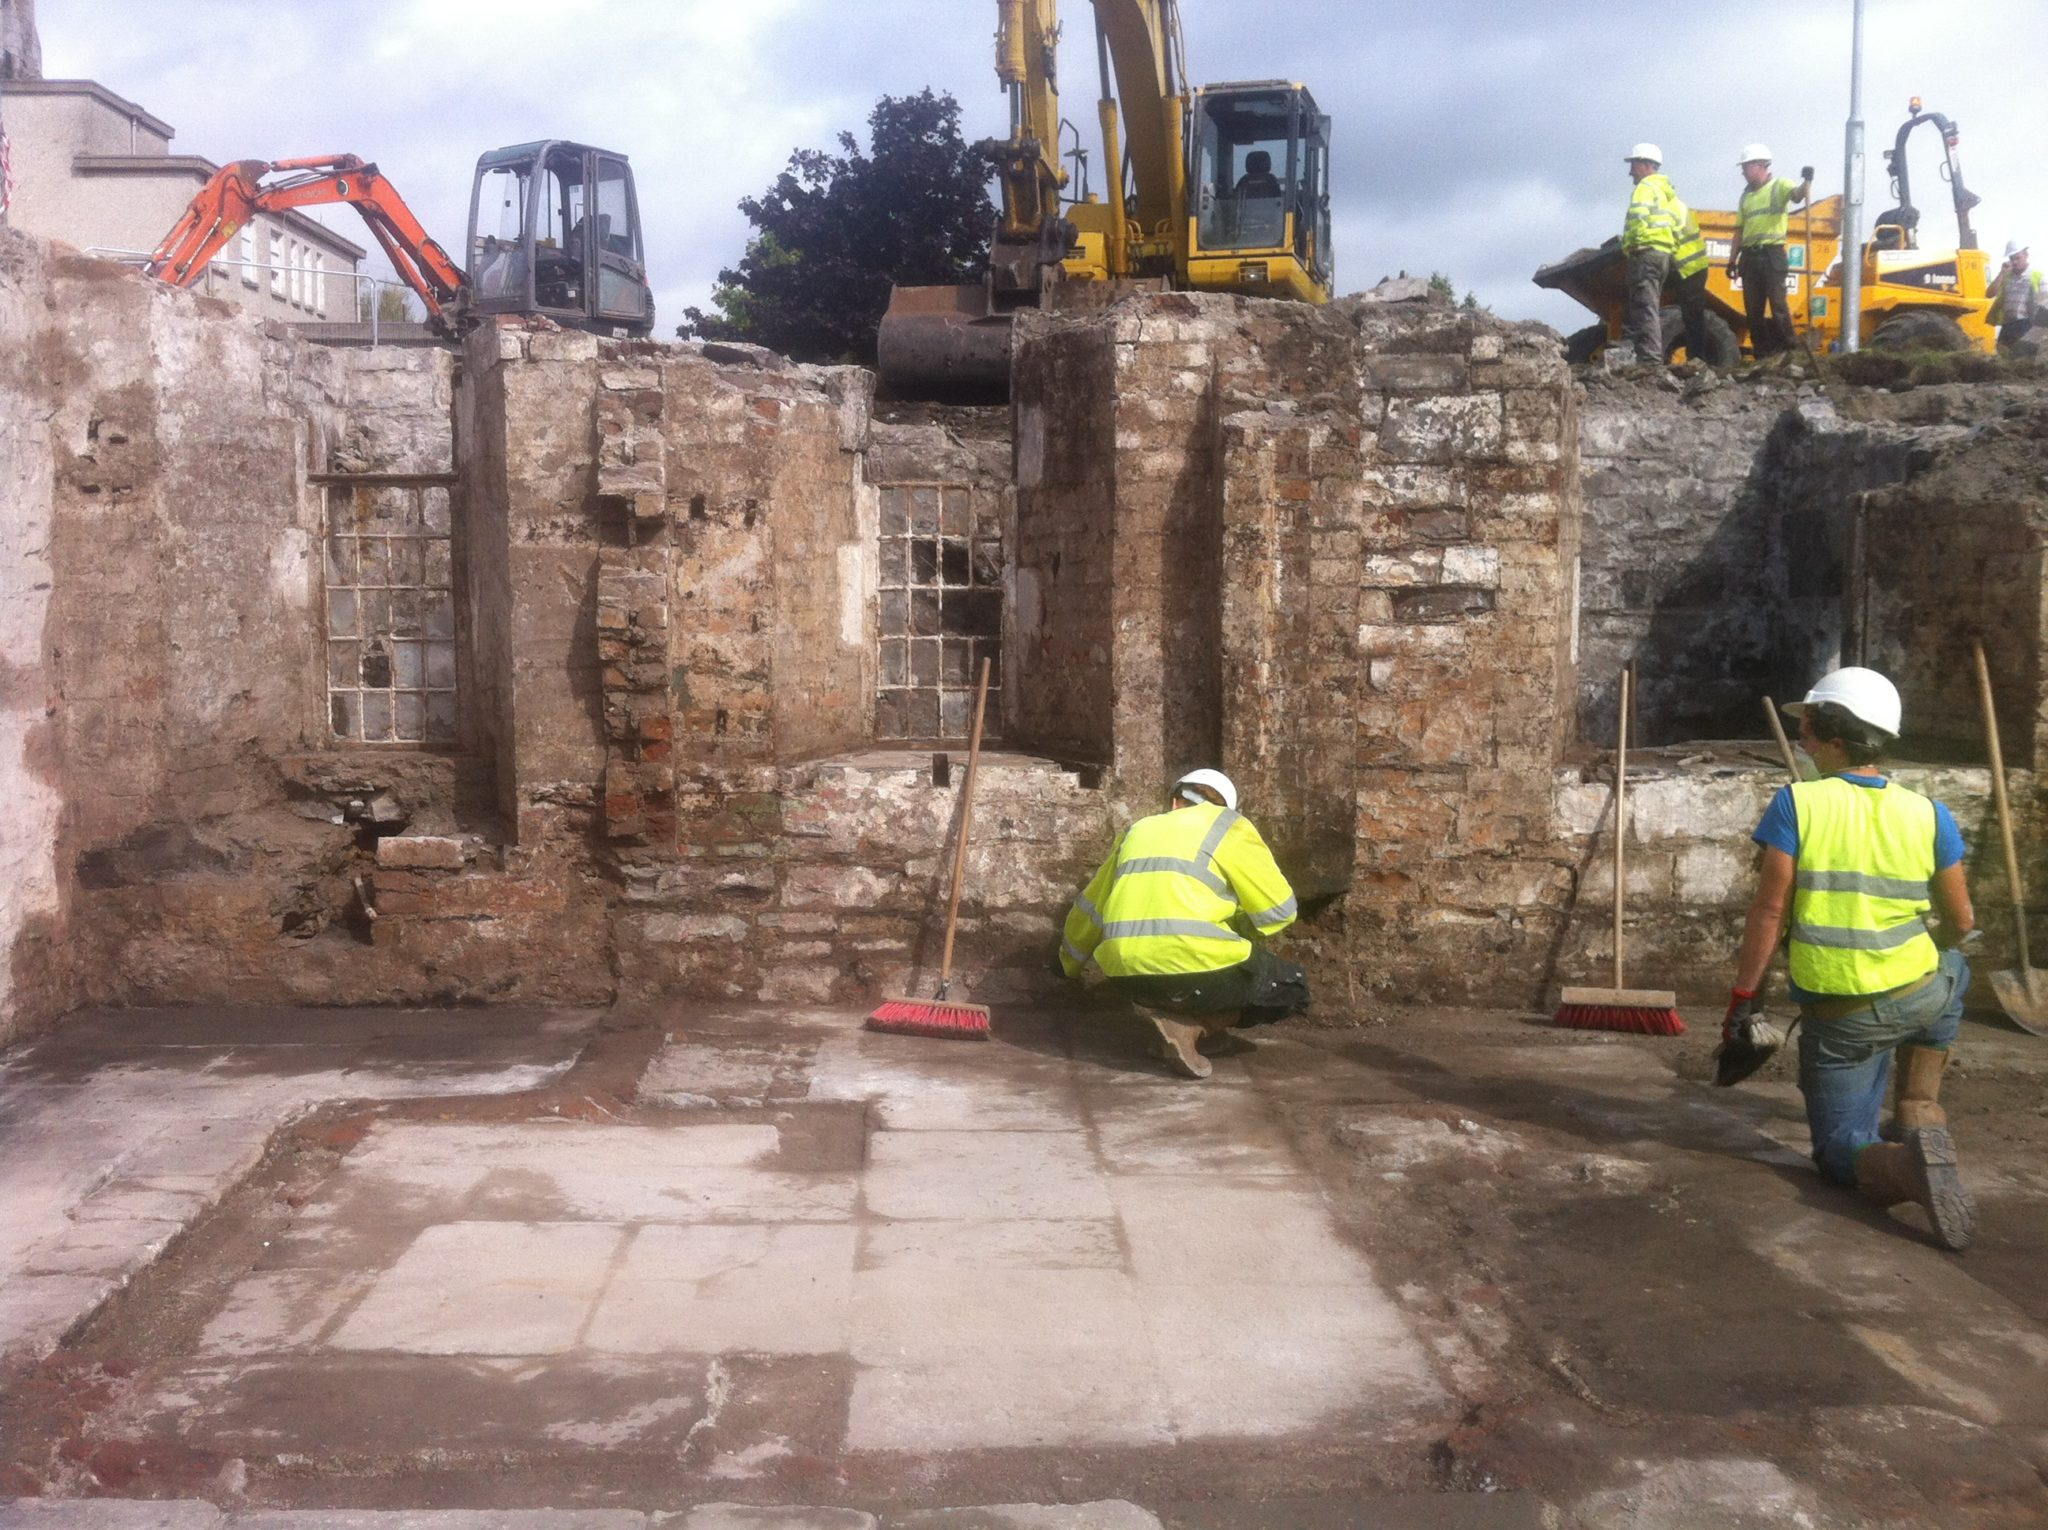 Sod-turning at DIT Grangegorman for new Central and East Quads